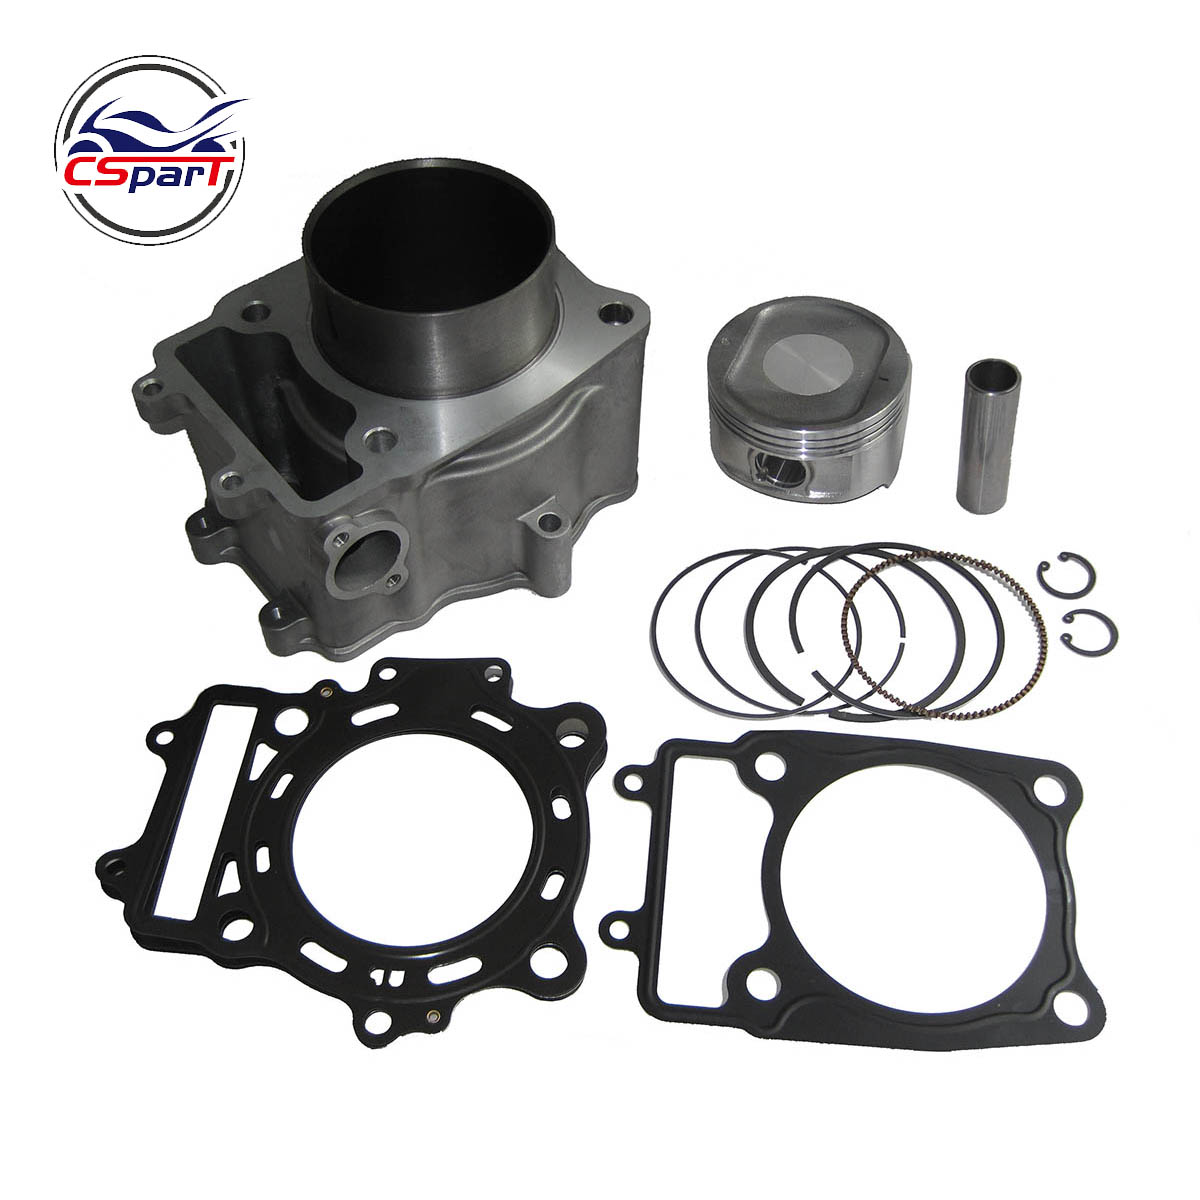 87.5mm Cylinder Piston Gasket Kit For  CFMOTO CF188 500 CF500 500CC UTV ATV GO KART